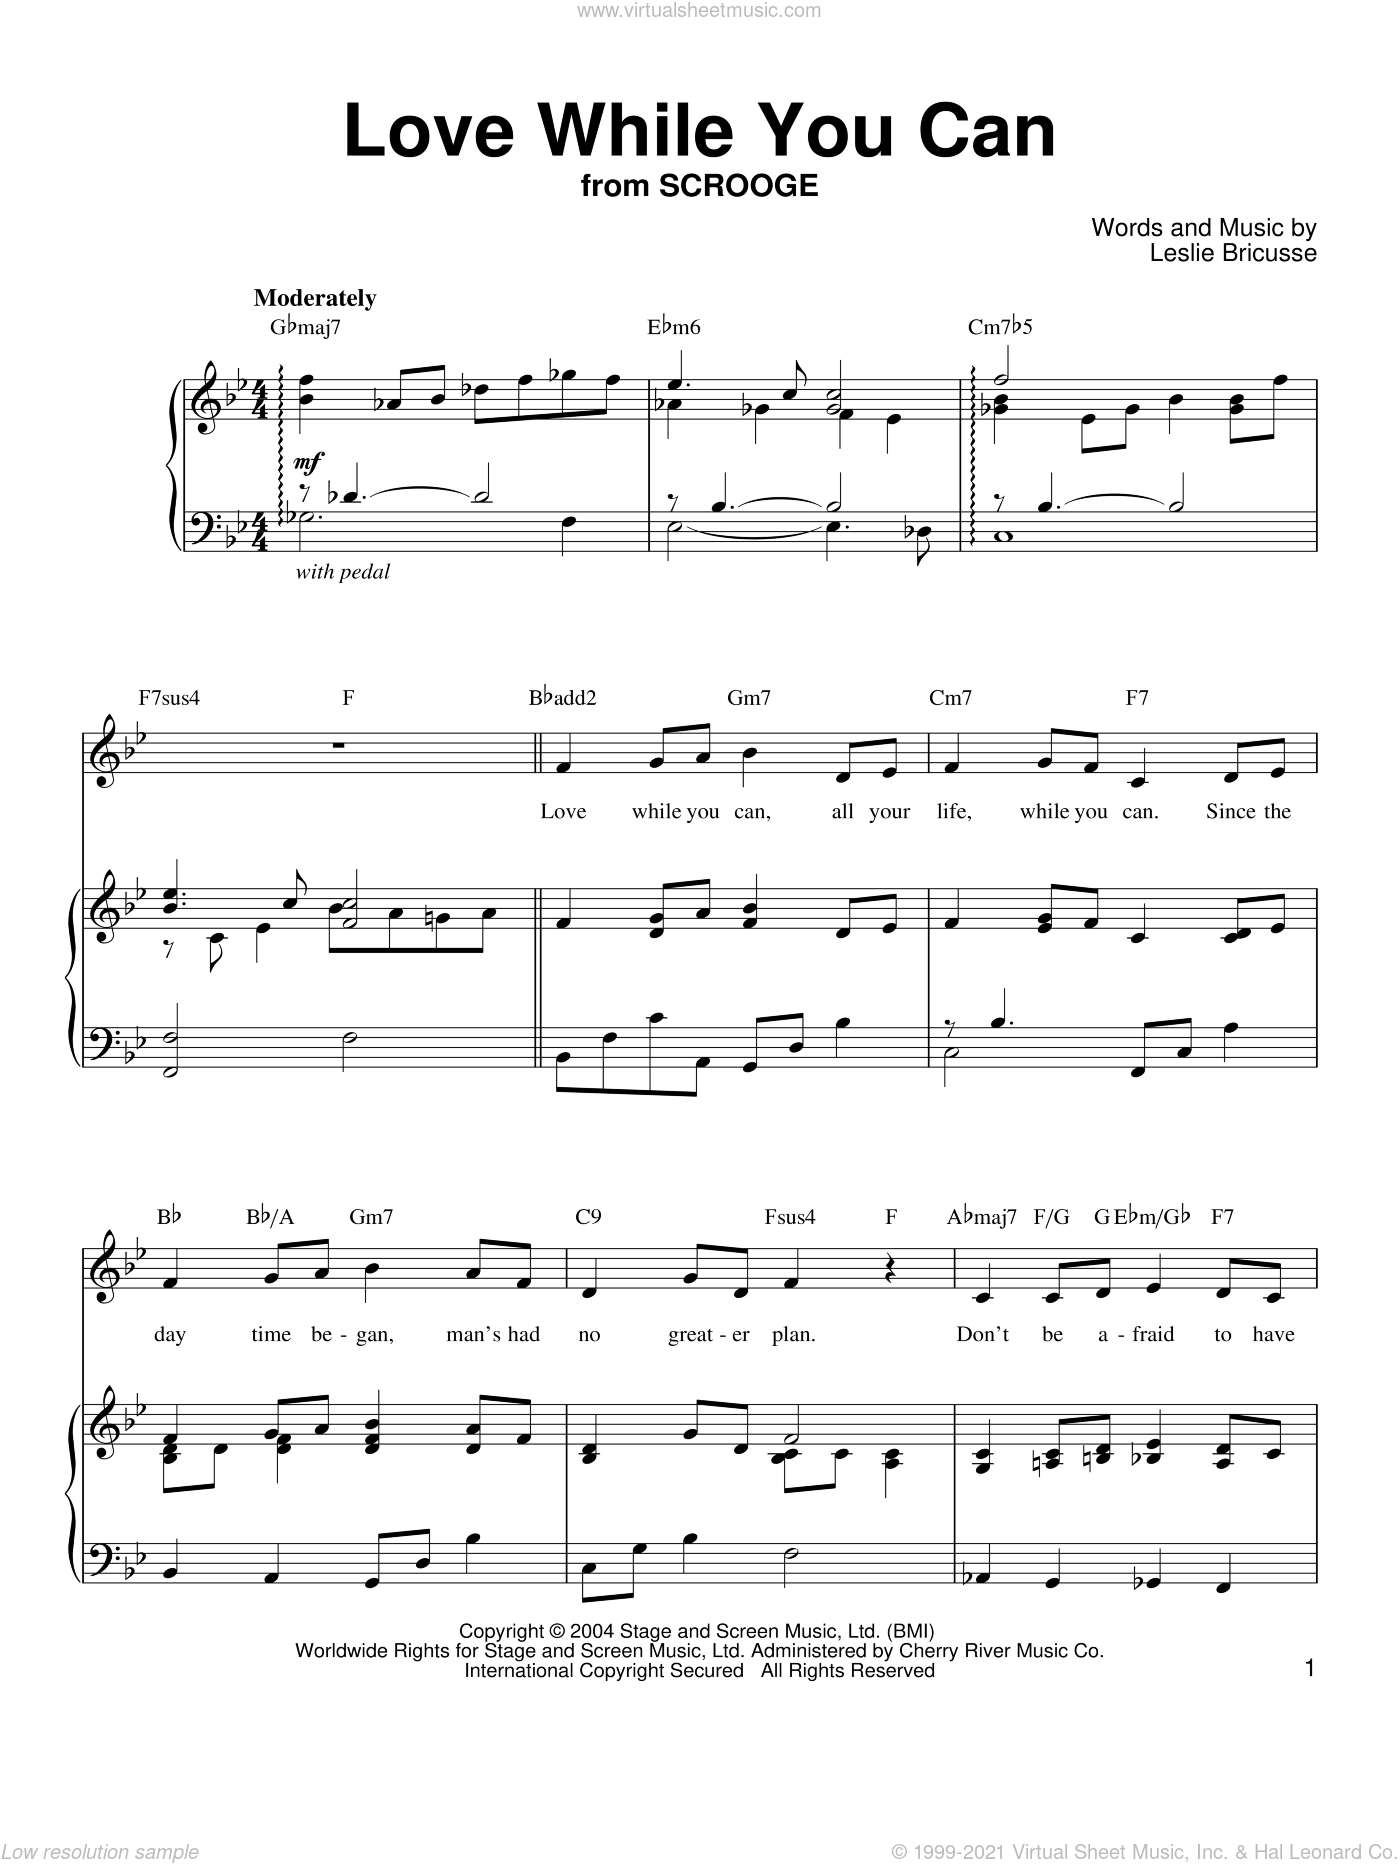 Love While You Can sheet music for voice, piano or guitar by Leslie Bricusse